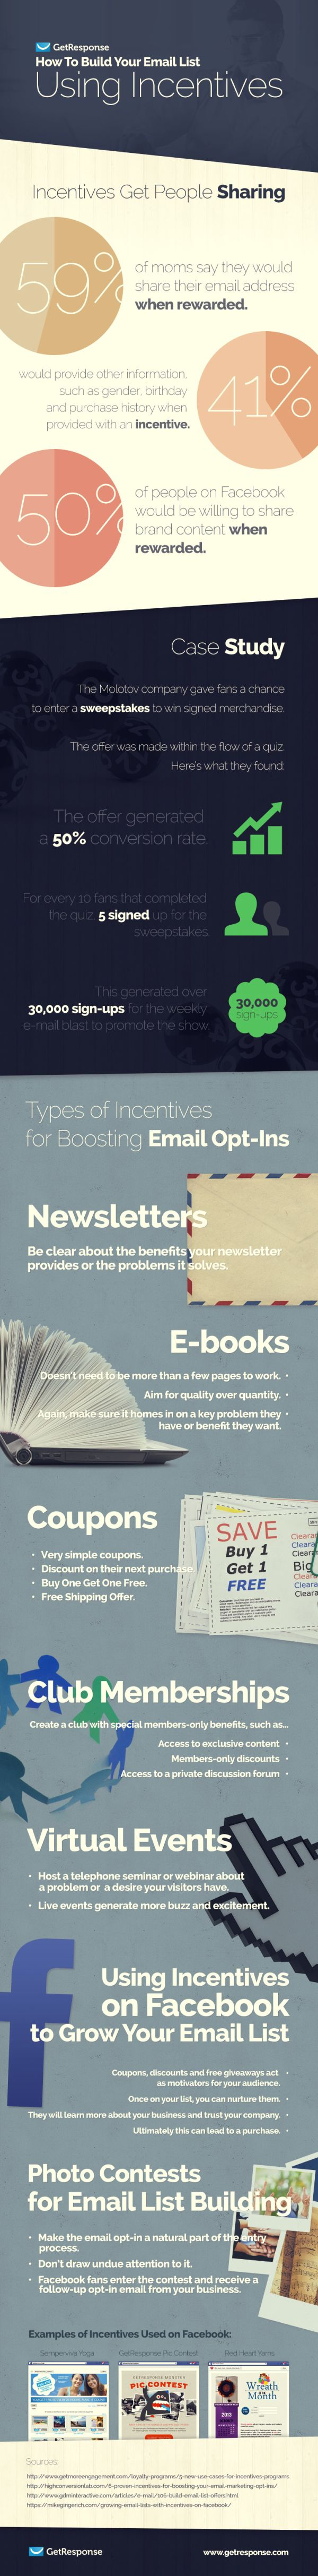 How to Build Your Email List Using Incentives #EmailList #EmailMarketing #Marketing #HowTo #infographic